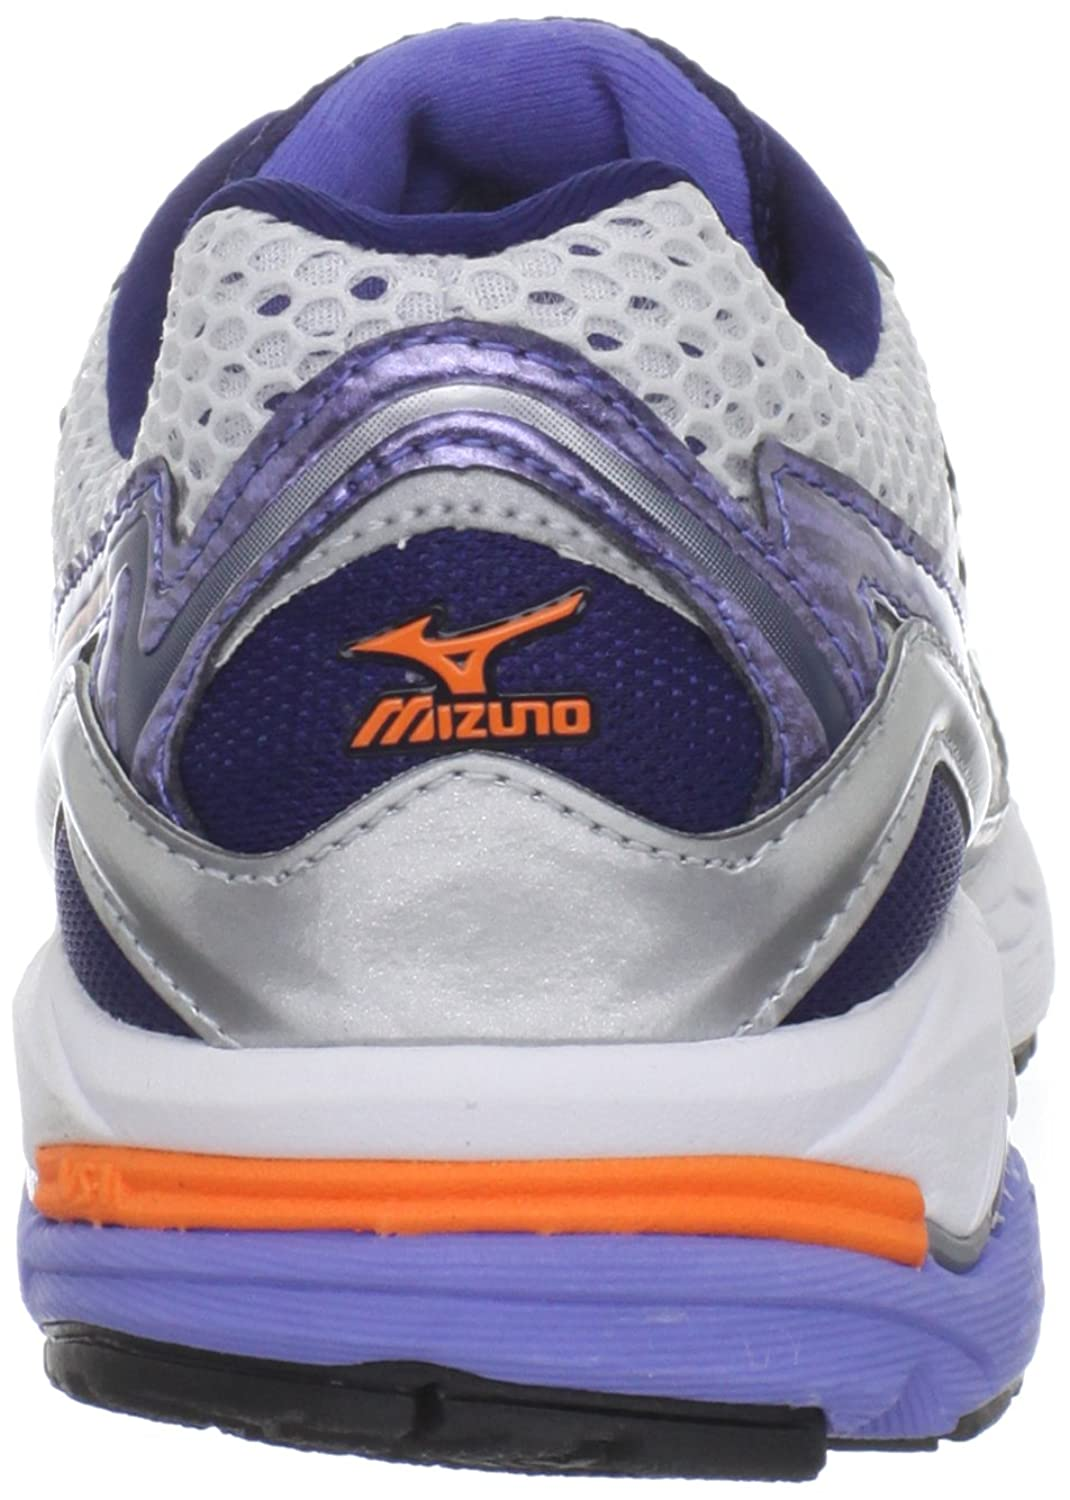 Vague Mizuno Inspirer 11 Femmes Amazon ngytId